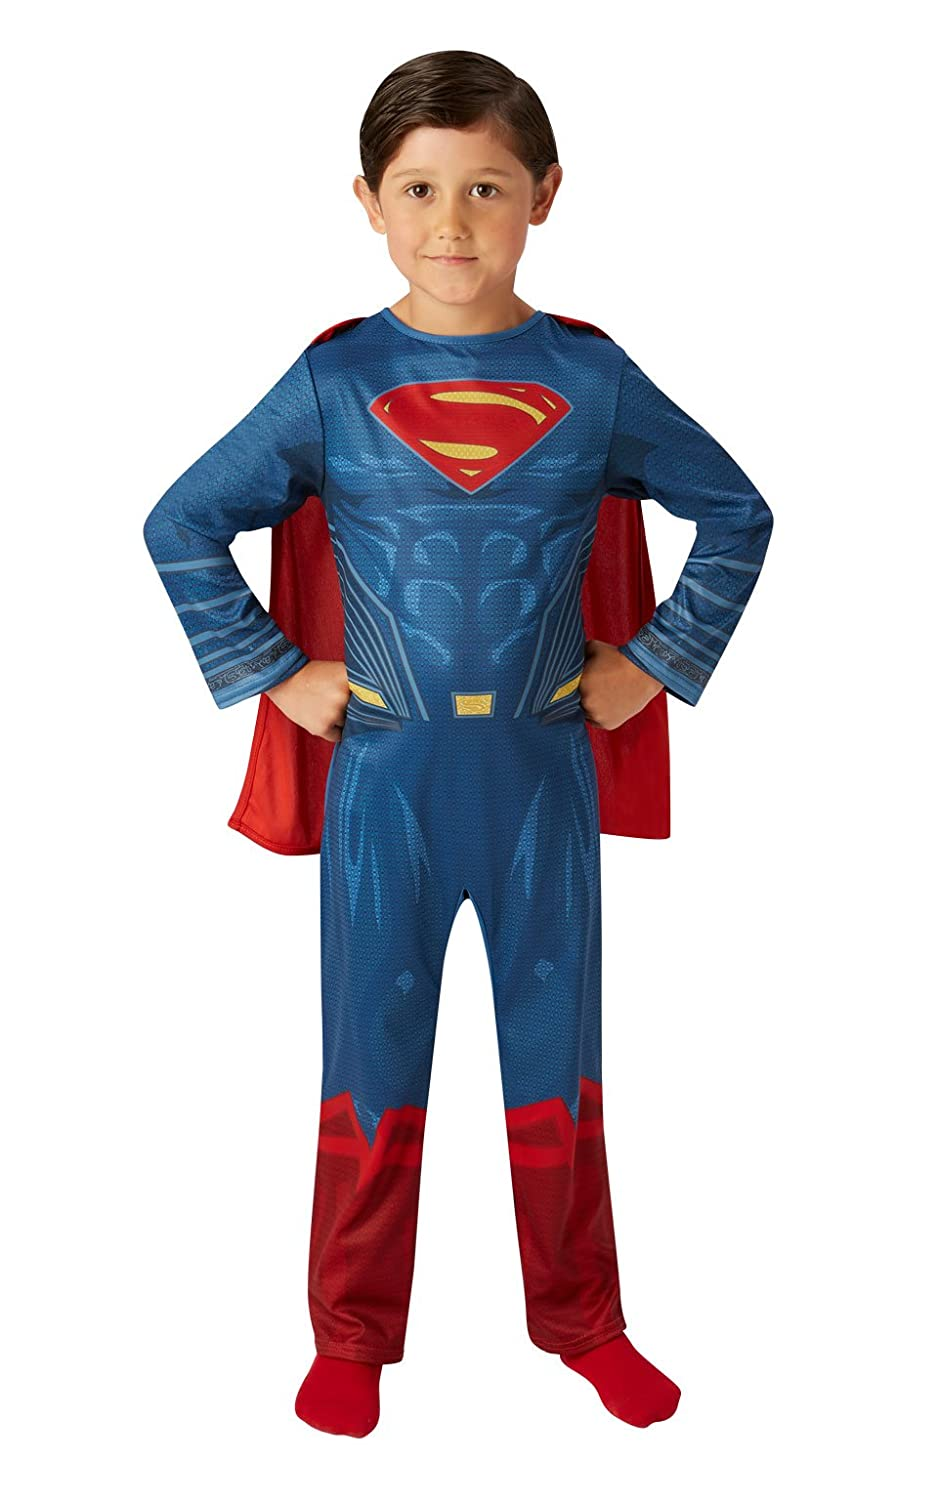 Rubie's Official Child's Dc Comics Warner Bros Dawn of Justice Superman Costume - Small Rubie's 620426S